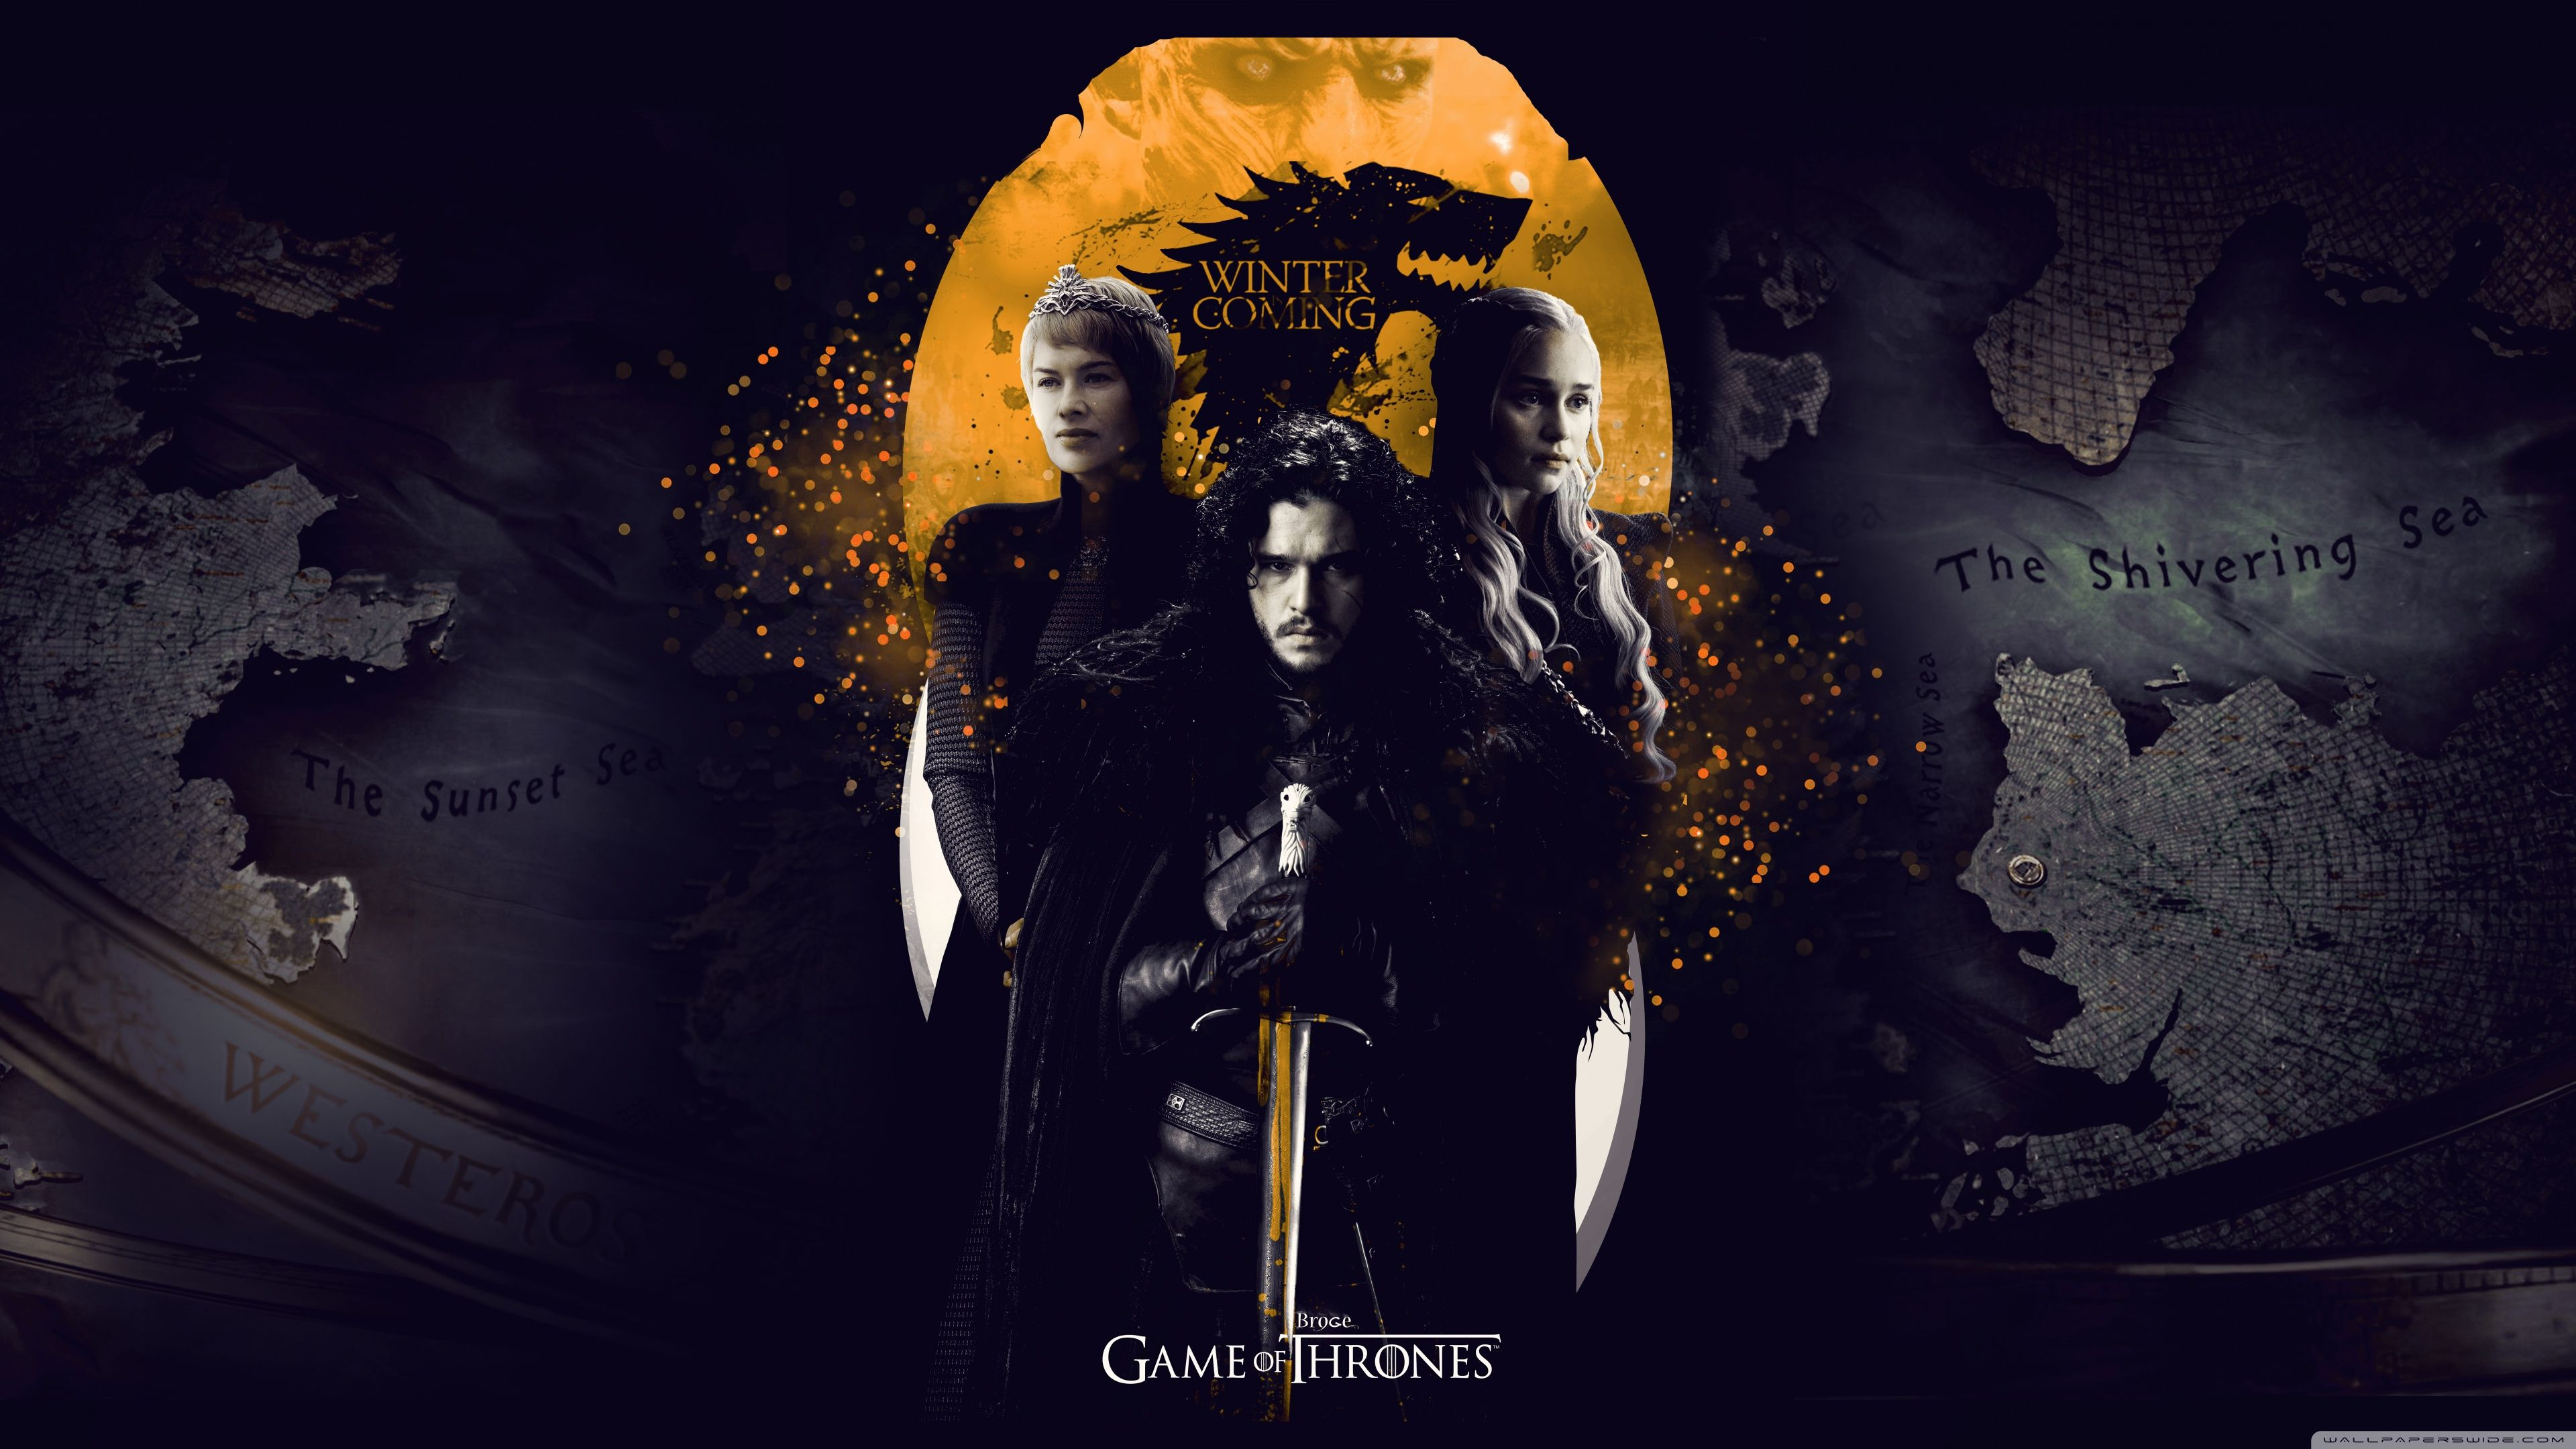 4K Game of Thrones HD Wallpapers - Top